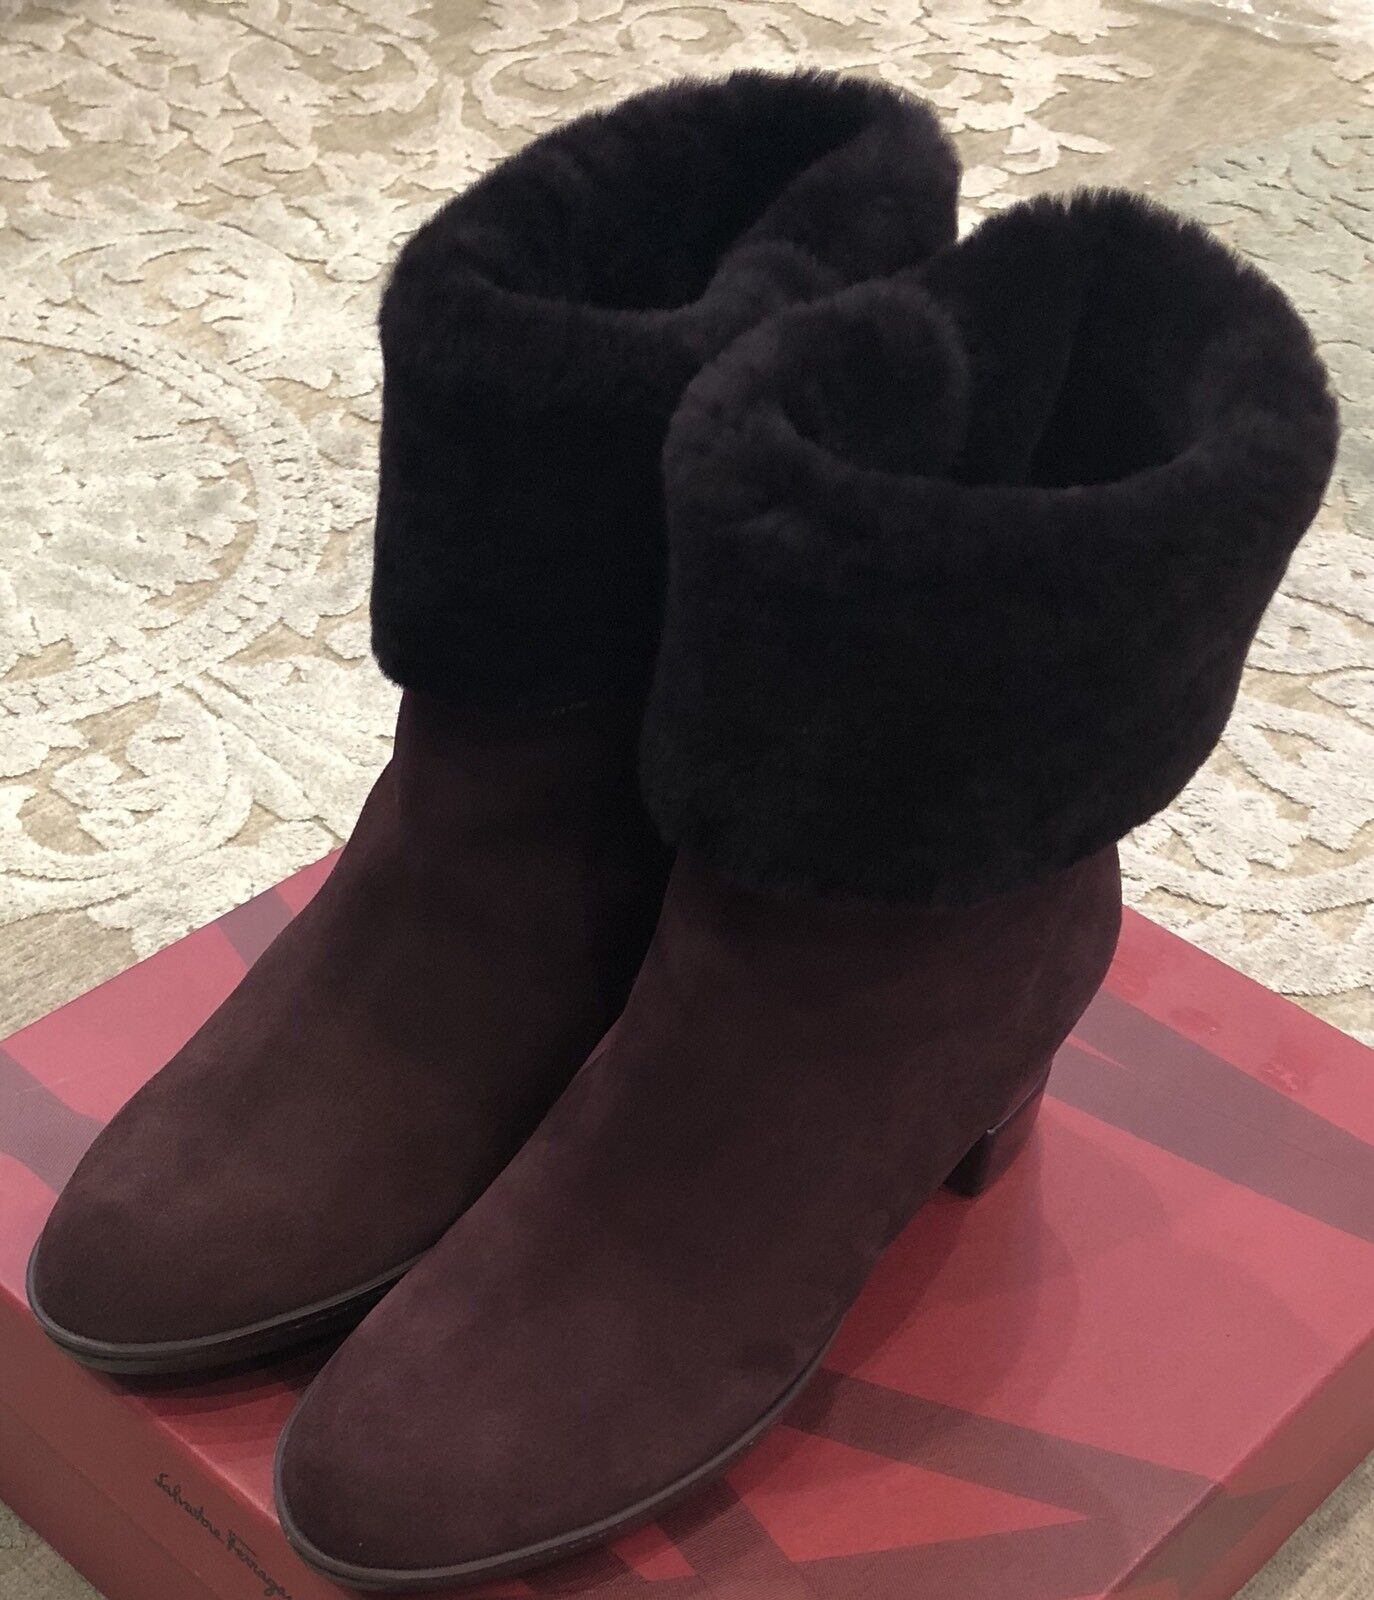 795 New Salvatore Ferragamo Womens My Cold Ladies shoes Boots Size 7 US 37